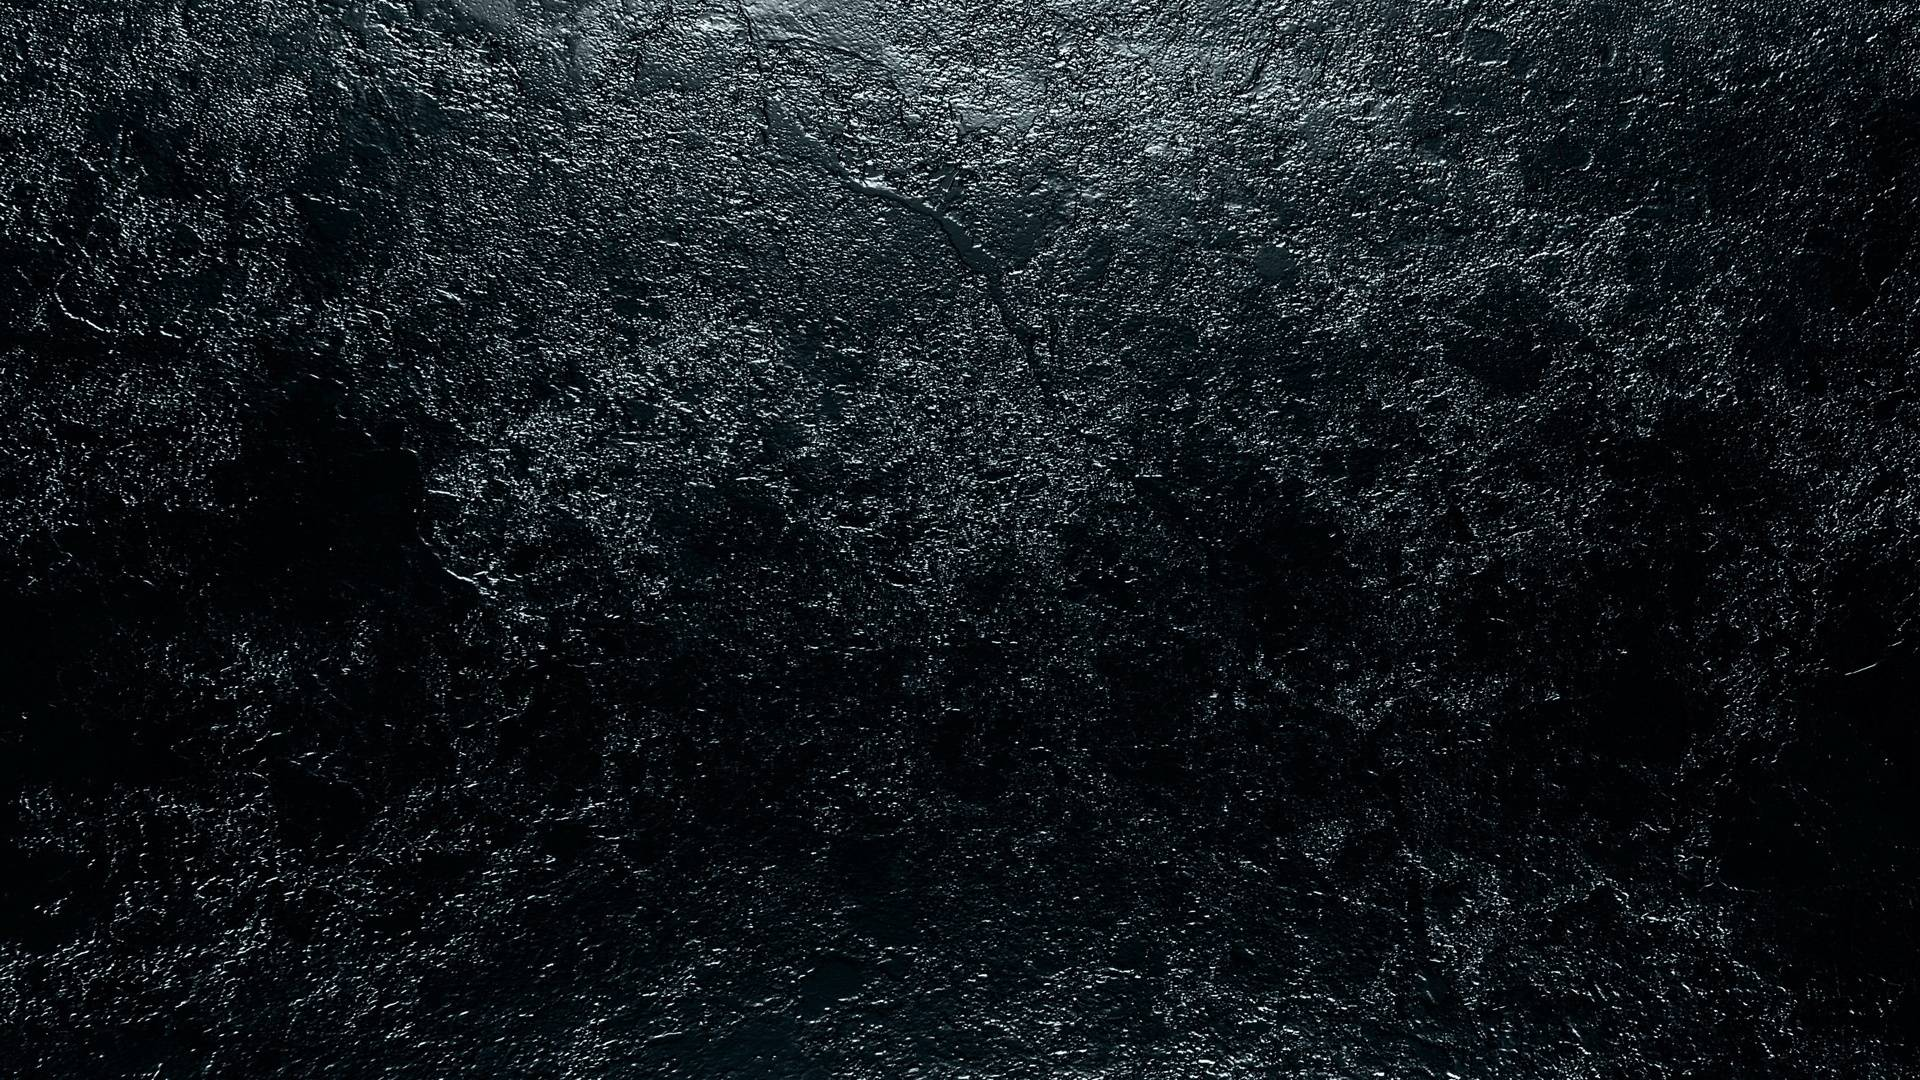 Black Wallpaper Background : Dark Backgrounds - Wallpaper Cave